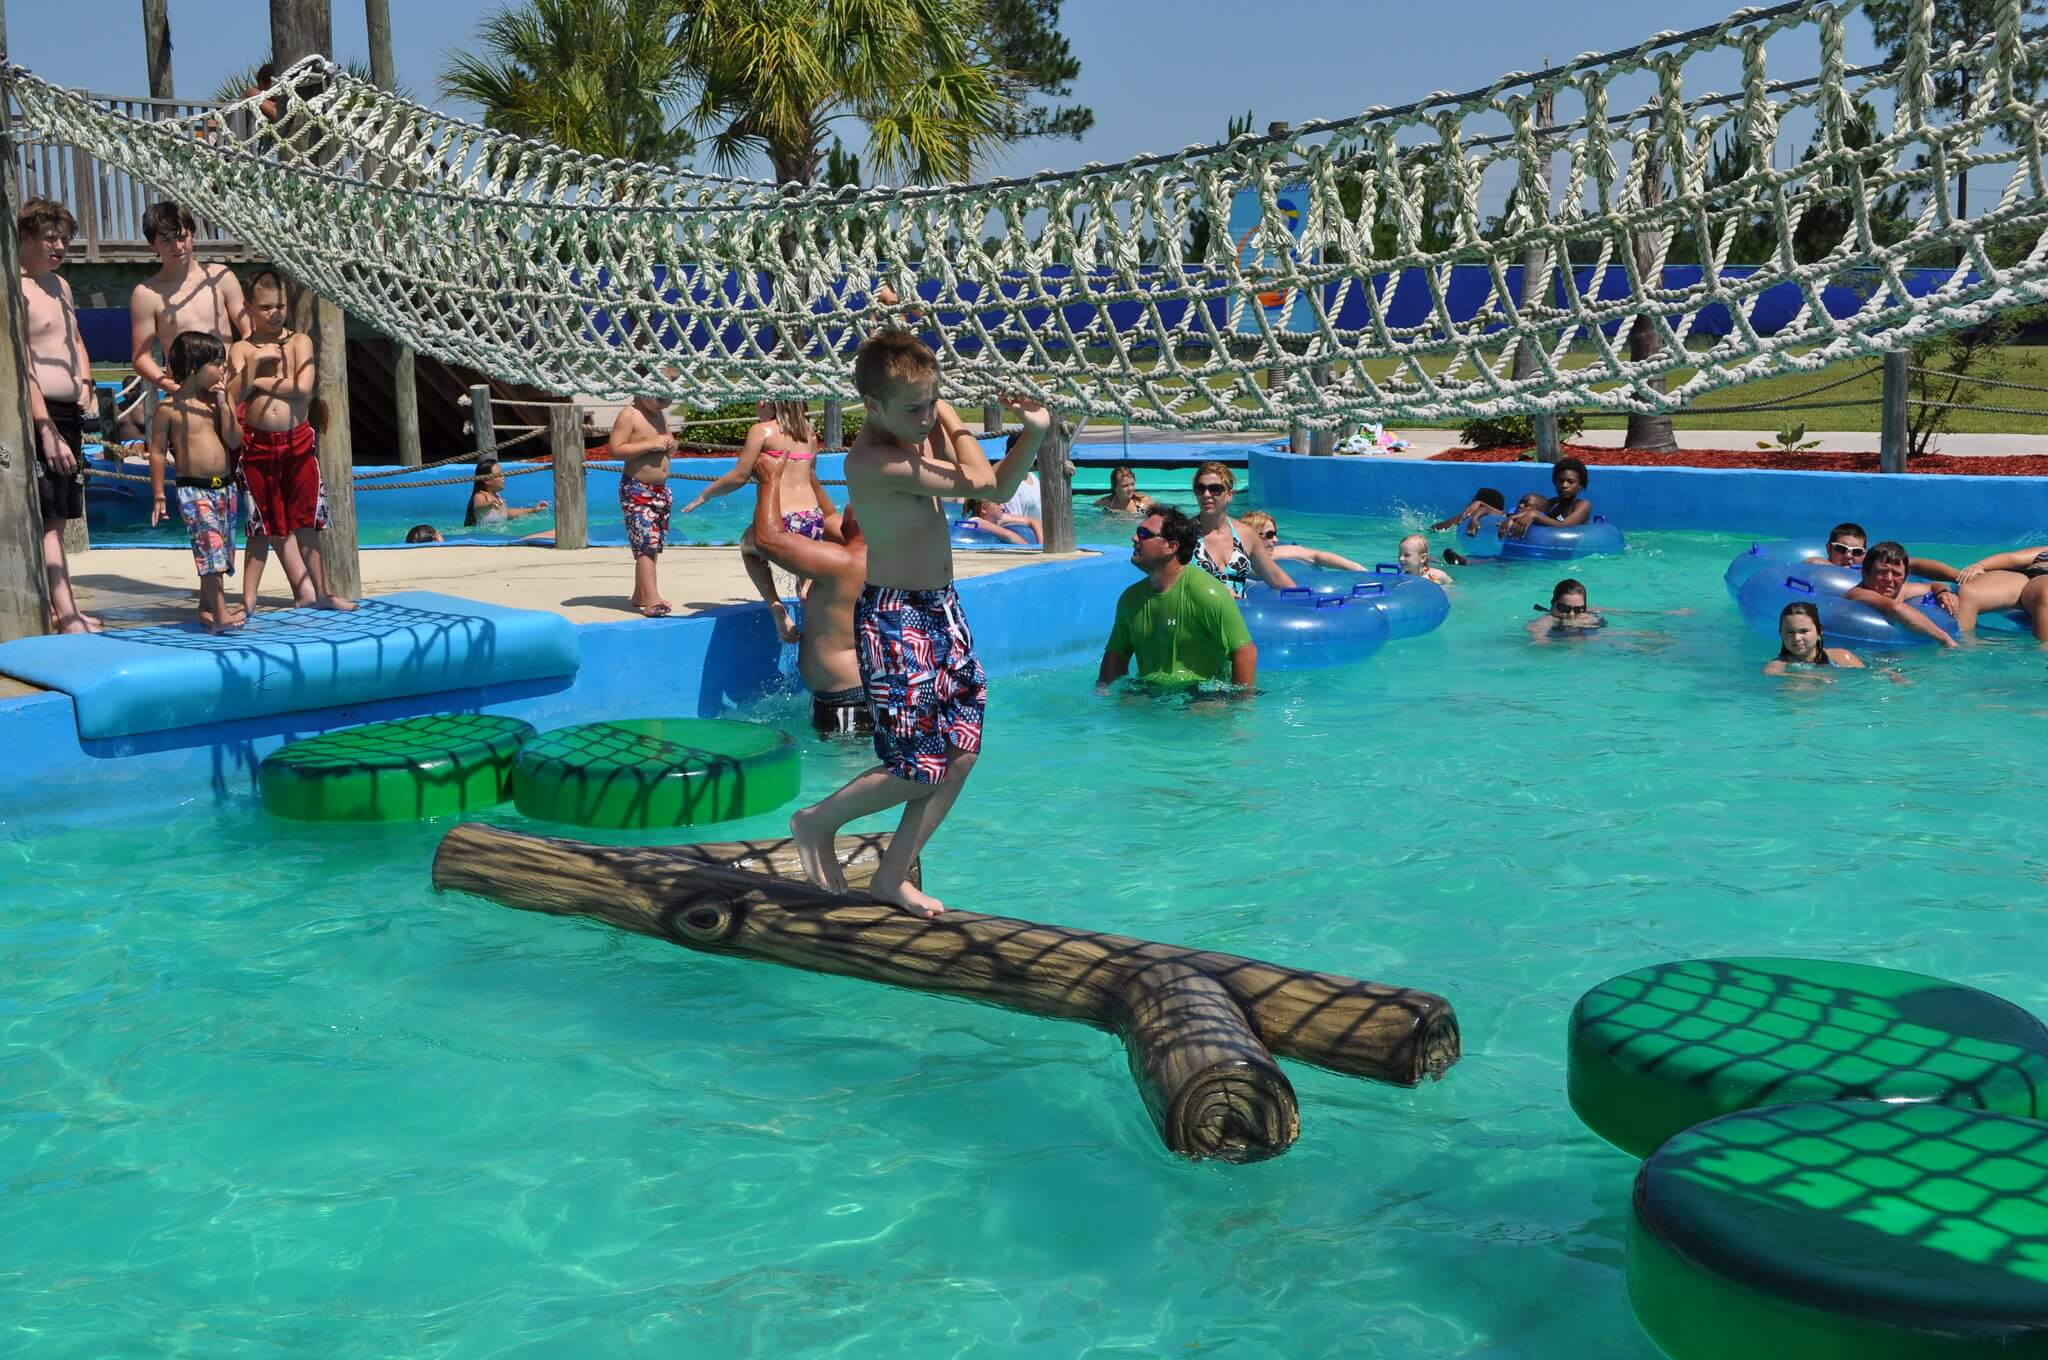 young kid crossing the pool on a log while holding onto rope